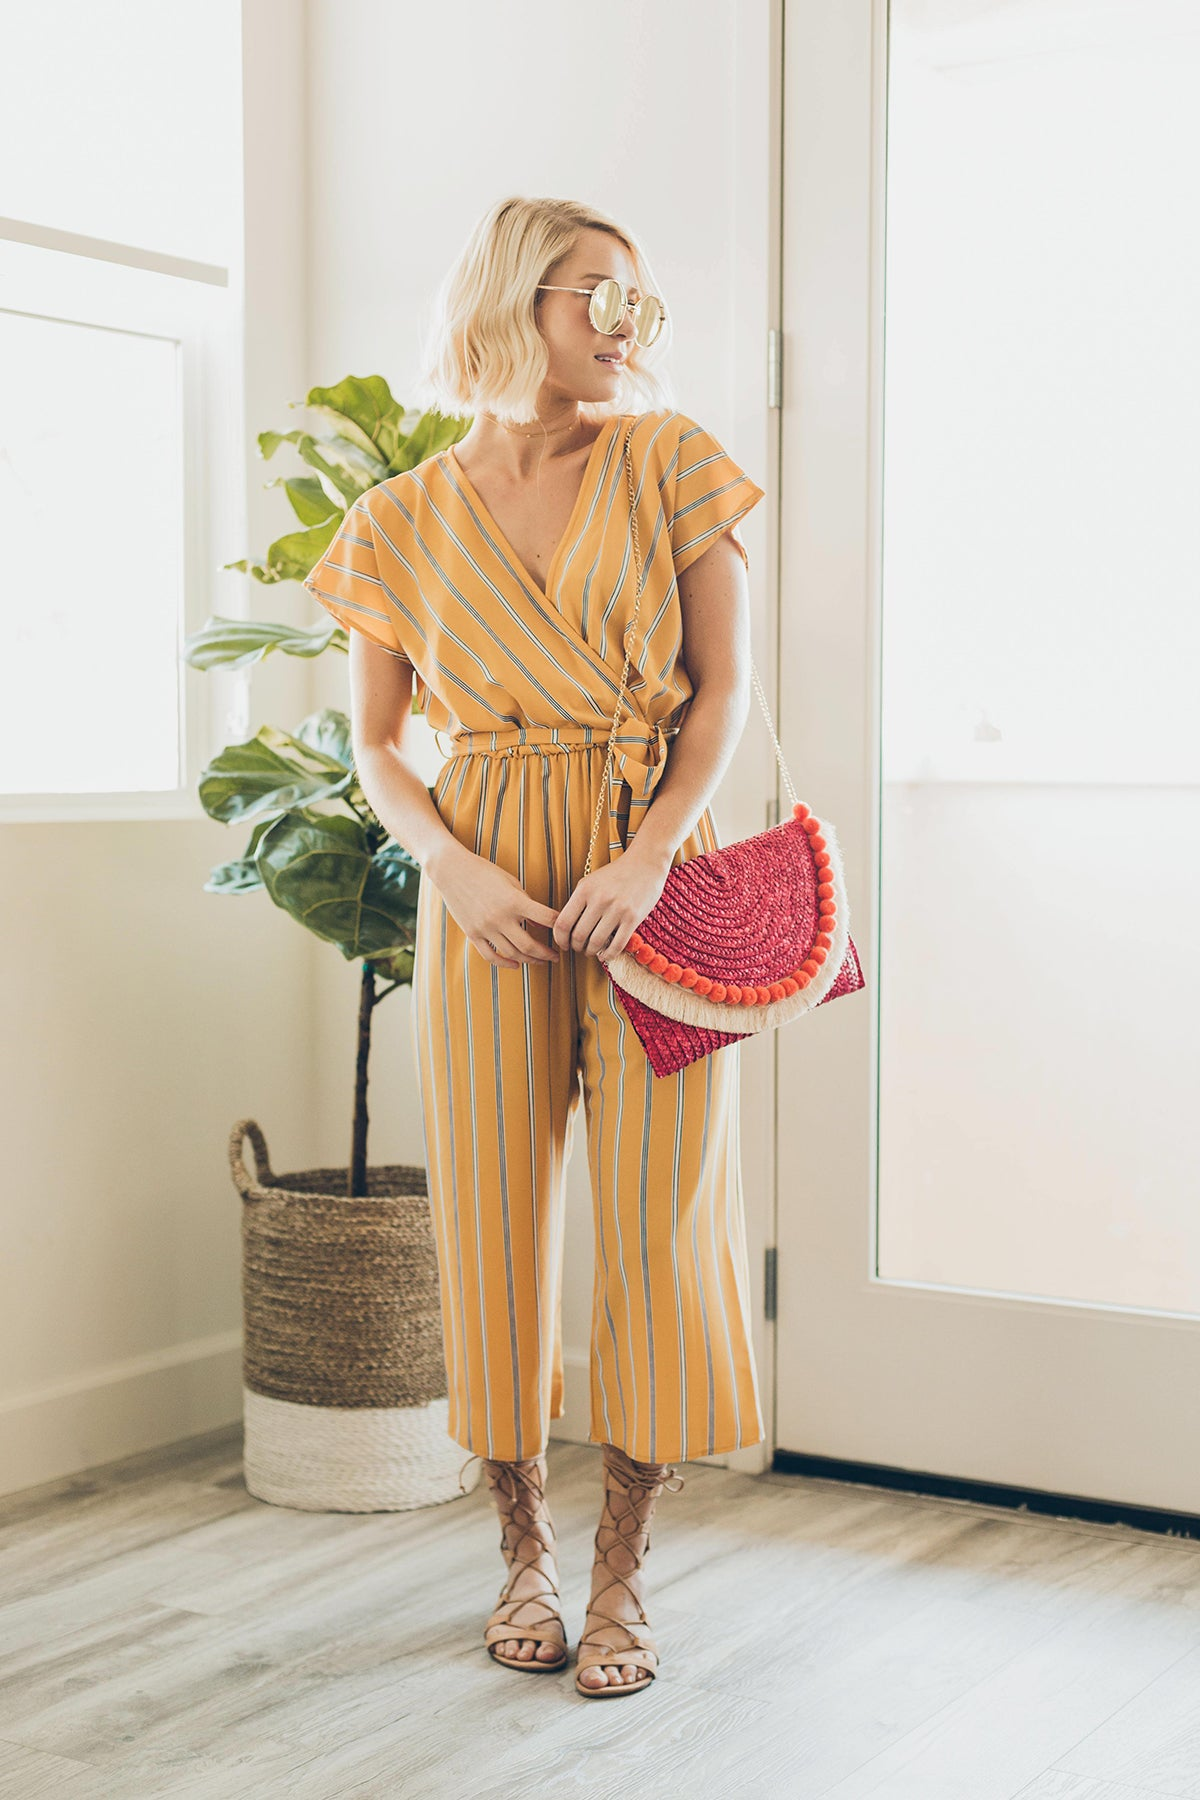 Got to Love Straw Bag in Fuschia